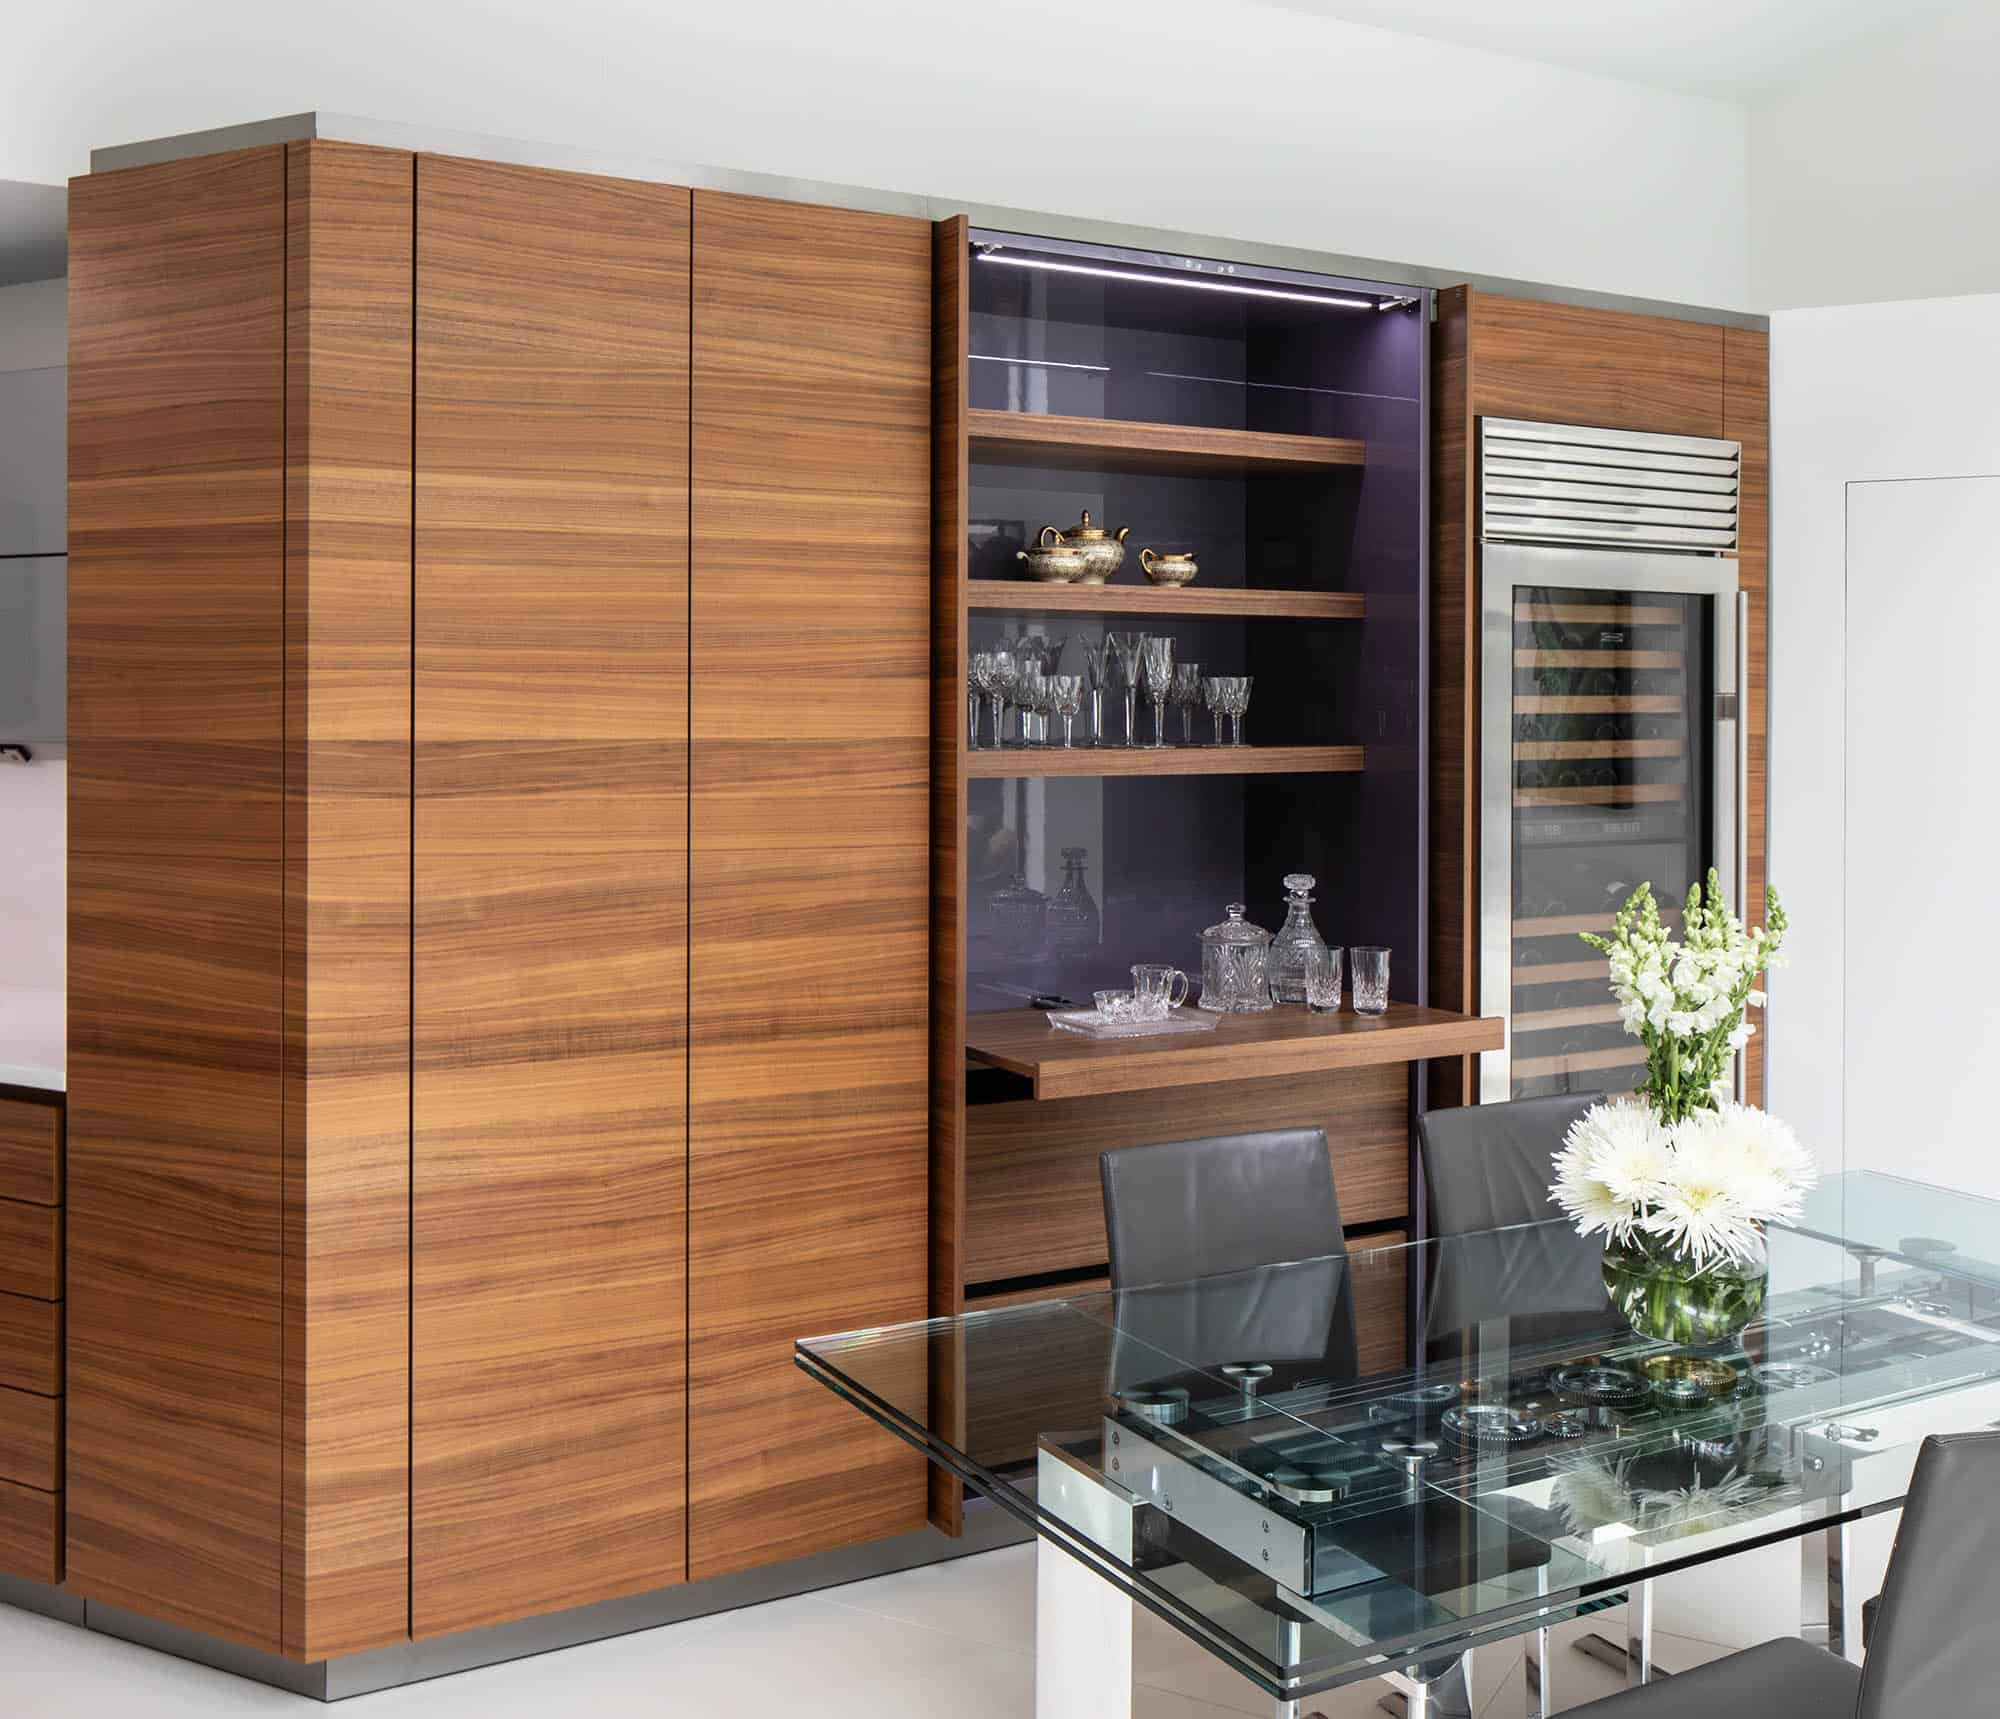 pocket doors when open reveal a bar and coffee bar with storage